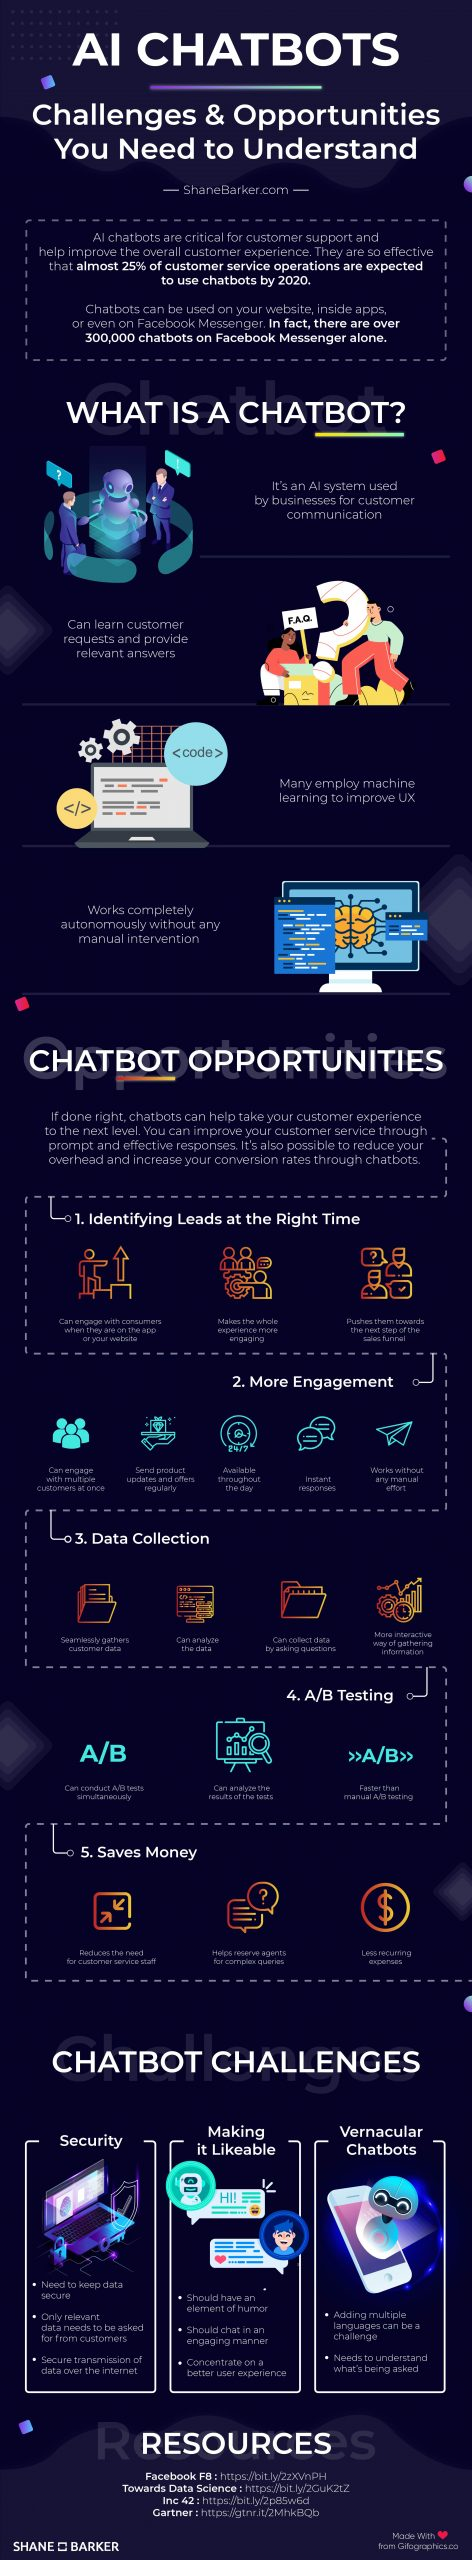 Why Do You Need an AI Chatbot for Your Business